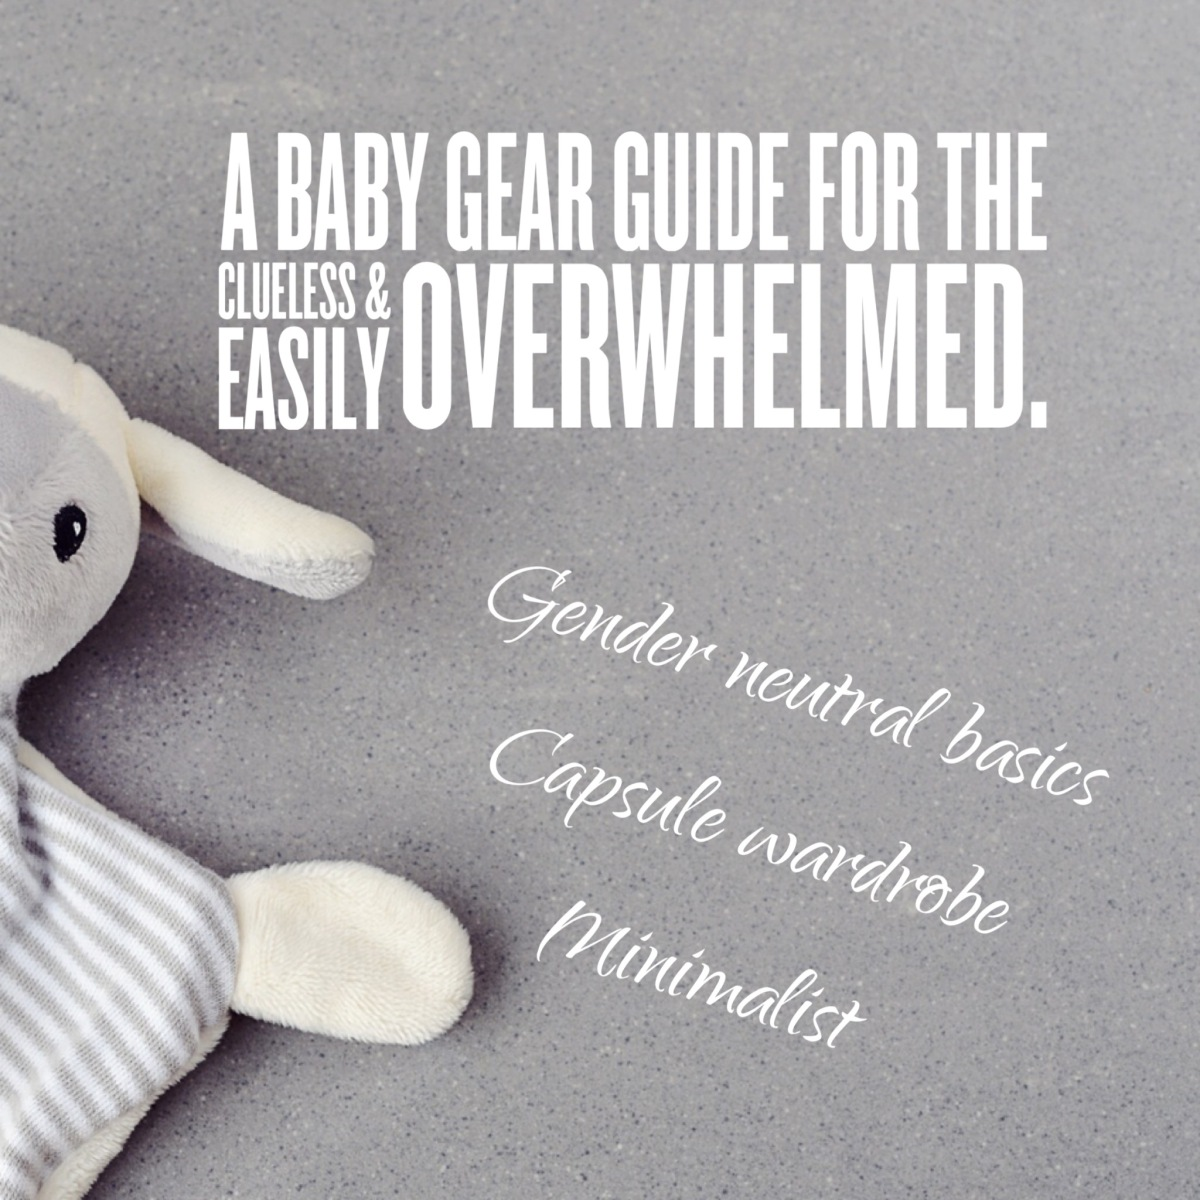 The Basic Gear You Will Need for Your Baby (A Somewhat Minimalist and Gender Neutral List)